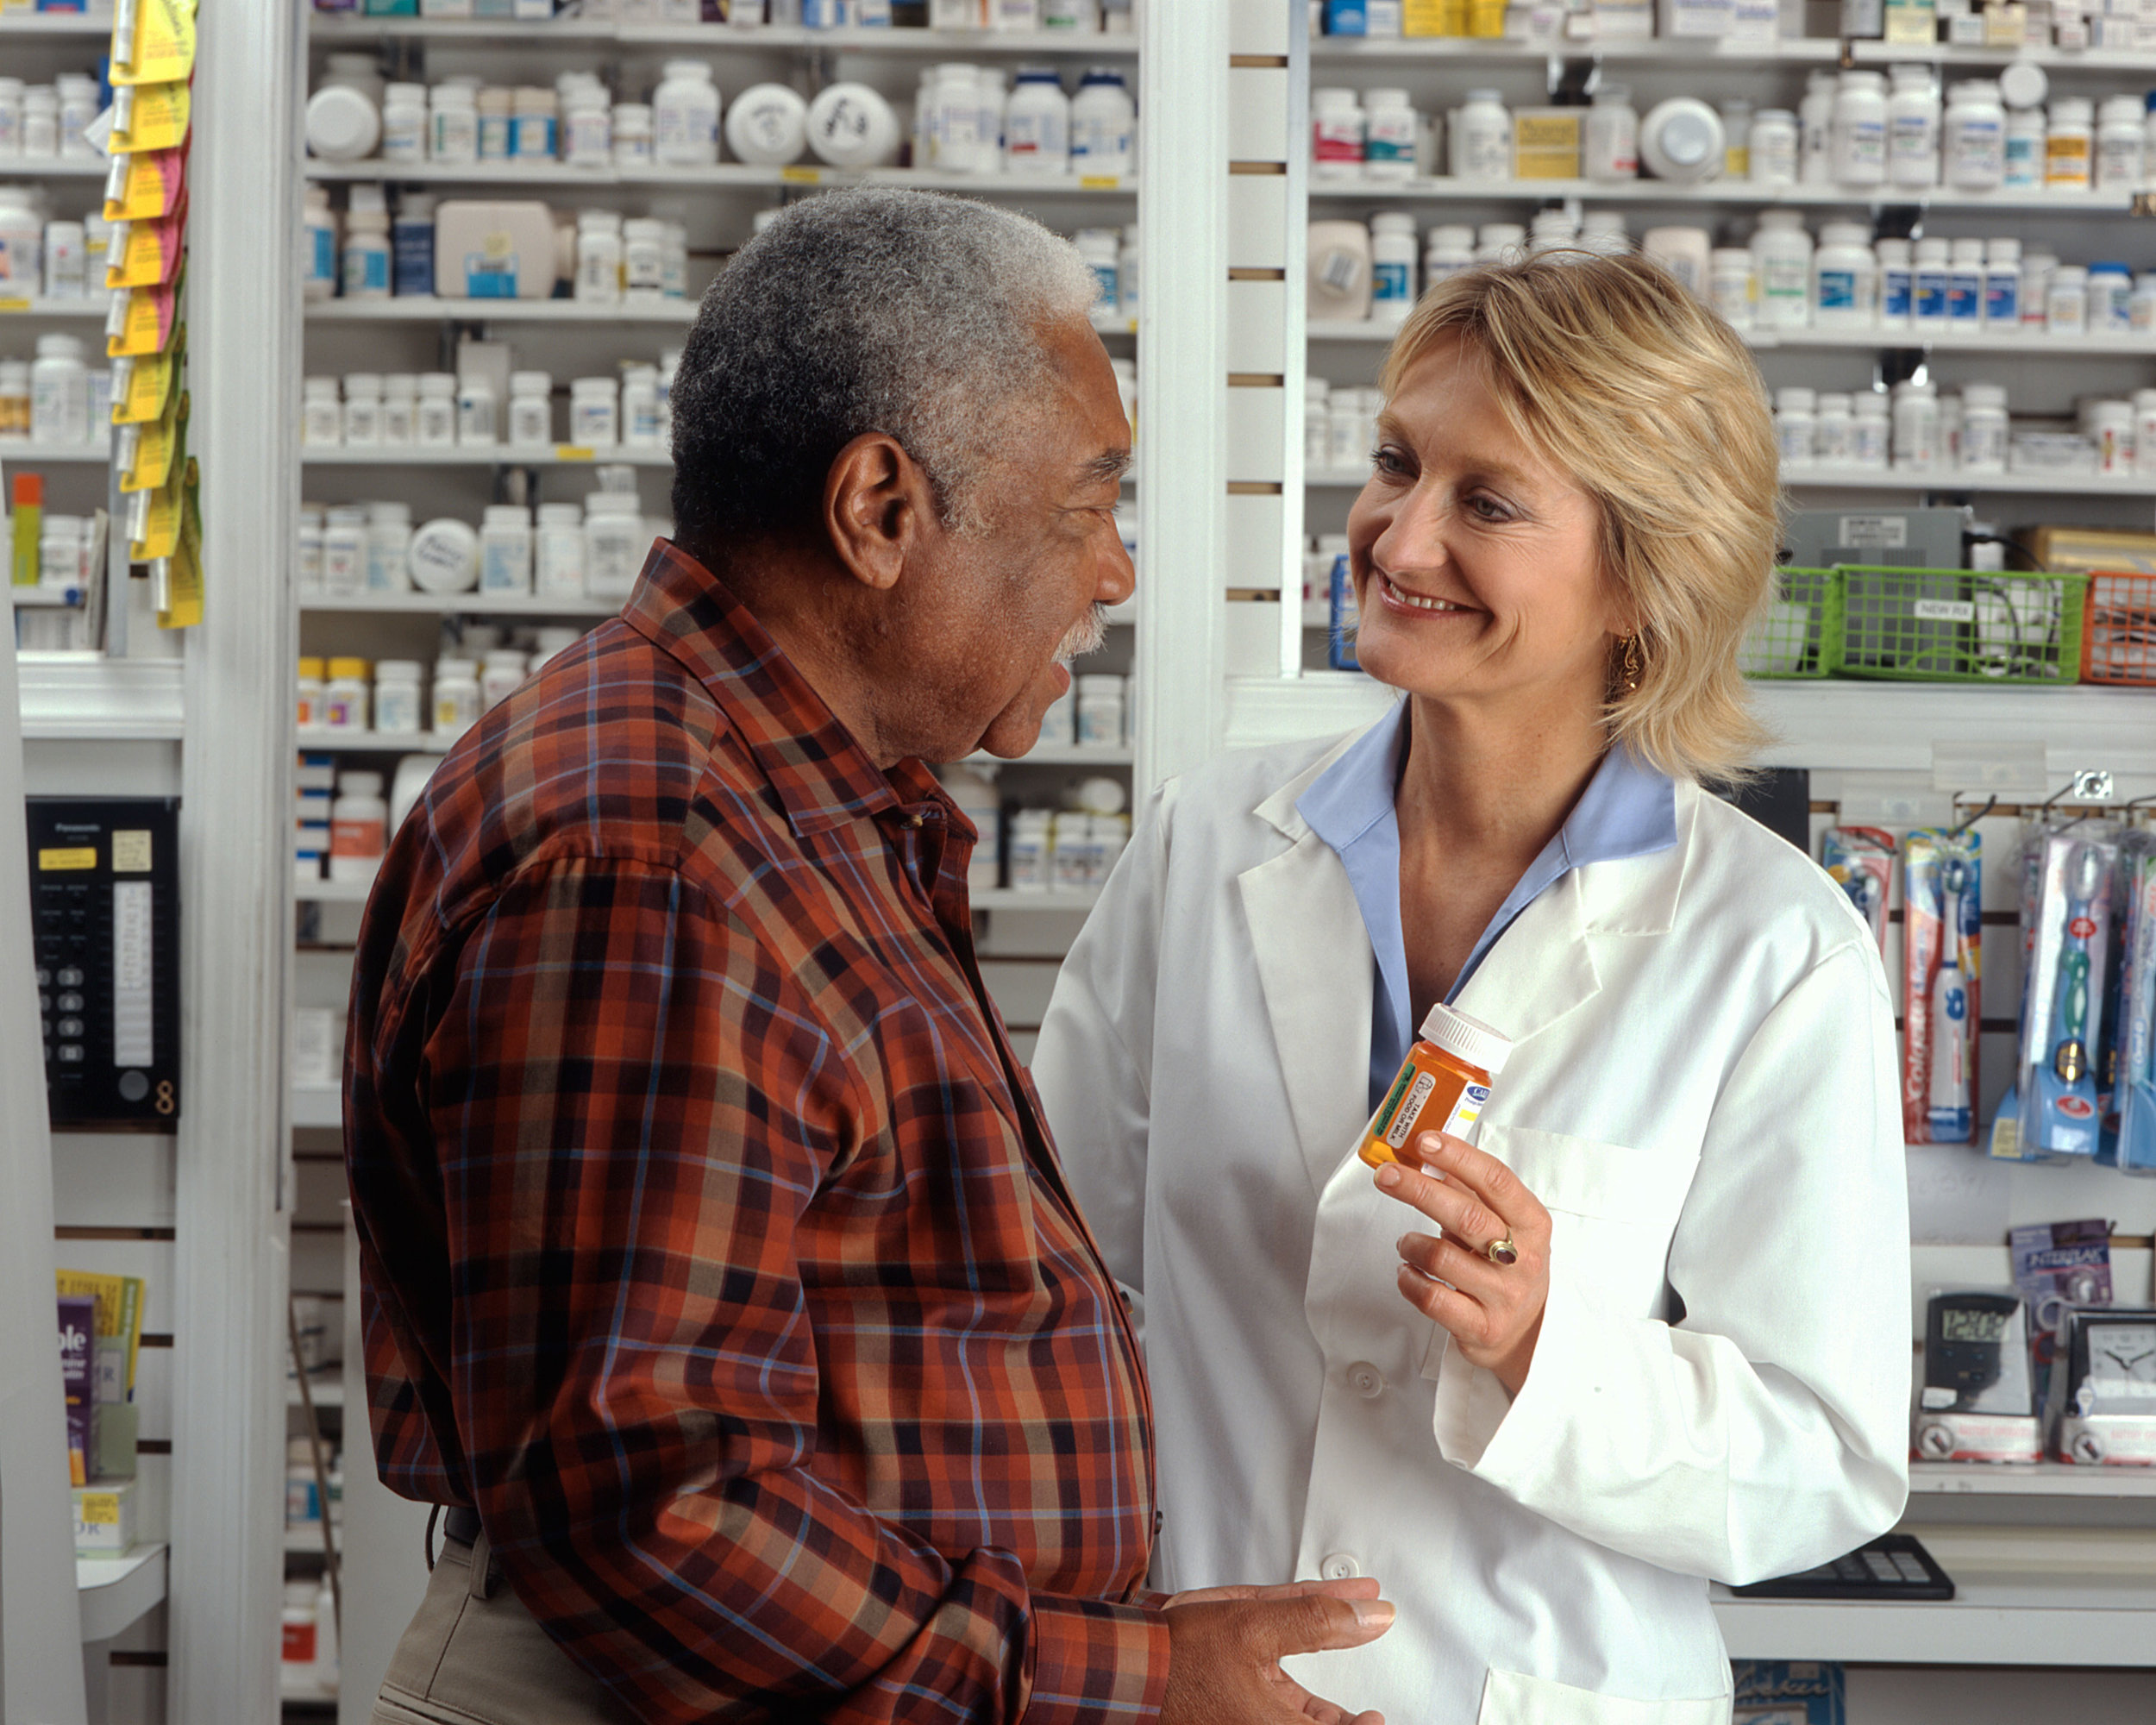 Man_consults_with_pharmacist_(3).jpg